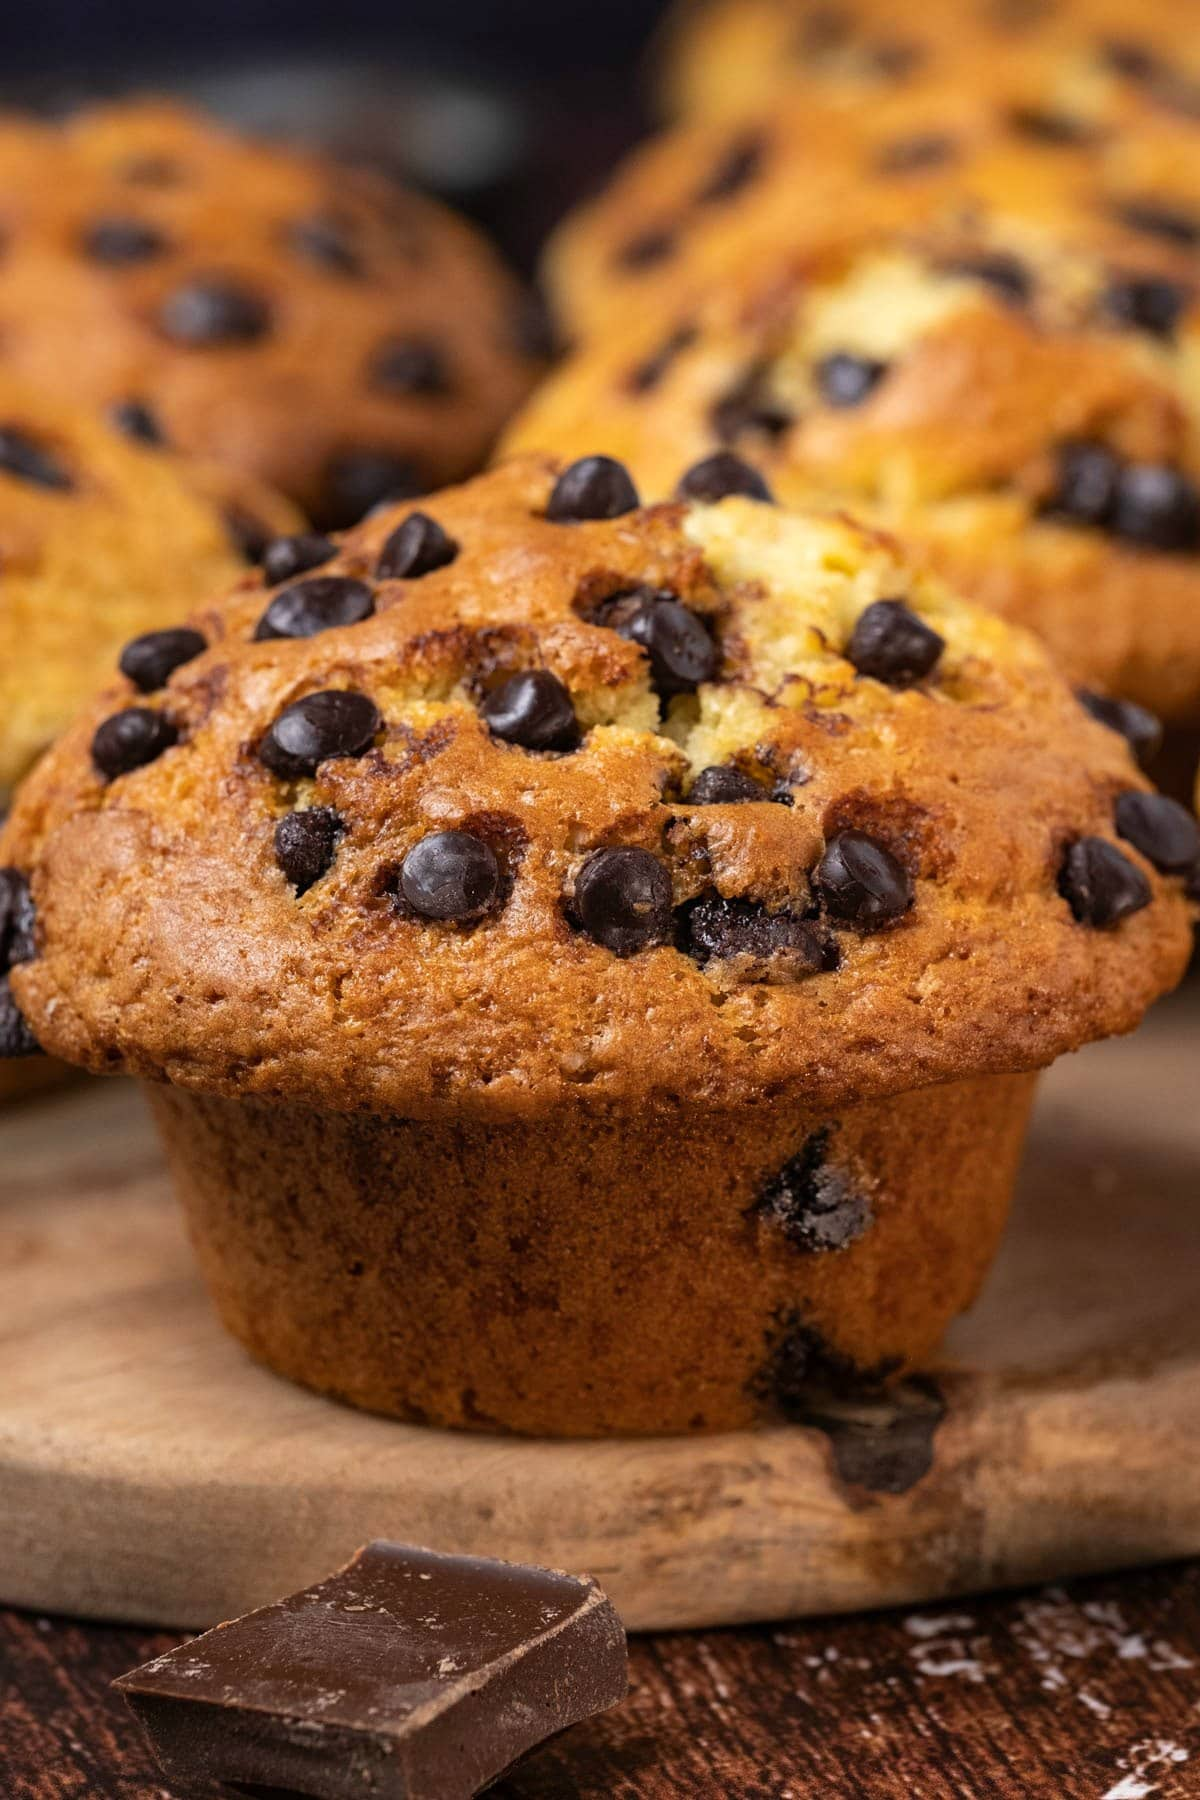 Chocolate chip muffins on a wooden board.